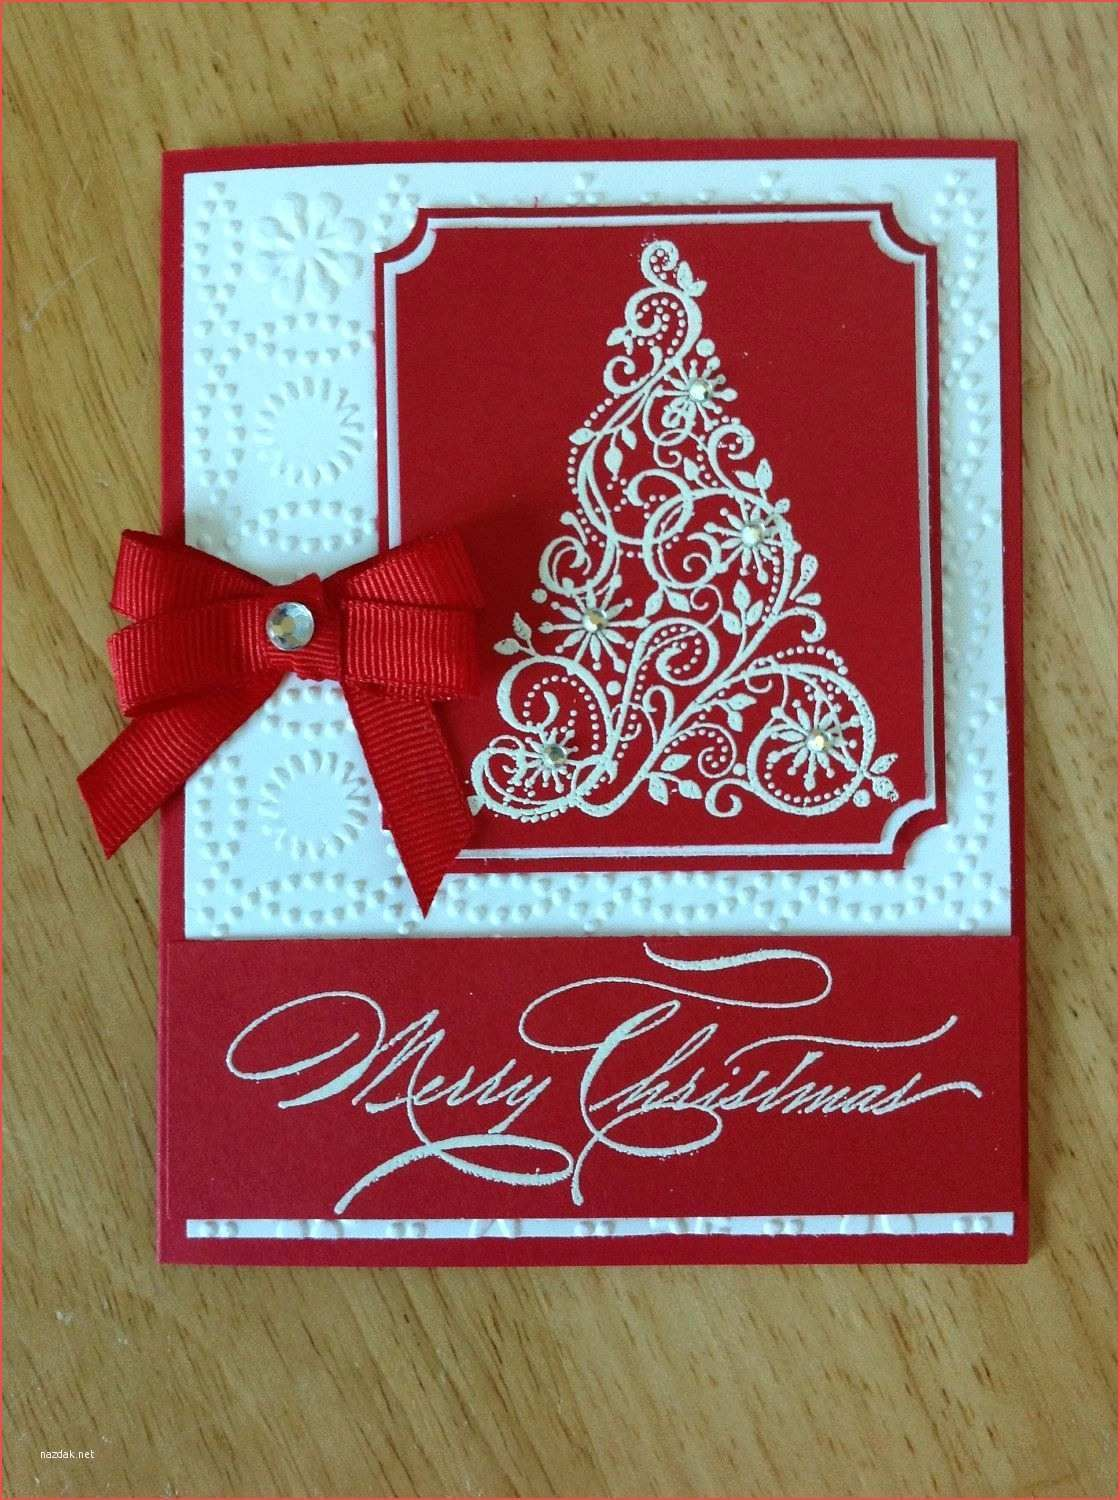 20 Most Popular and Thoughtful Christmas Card Ideas in